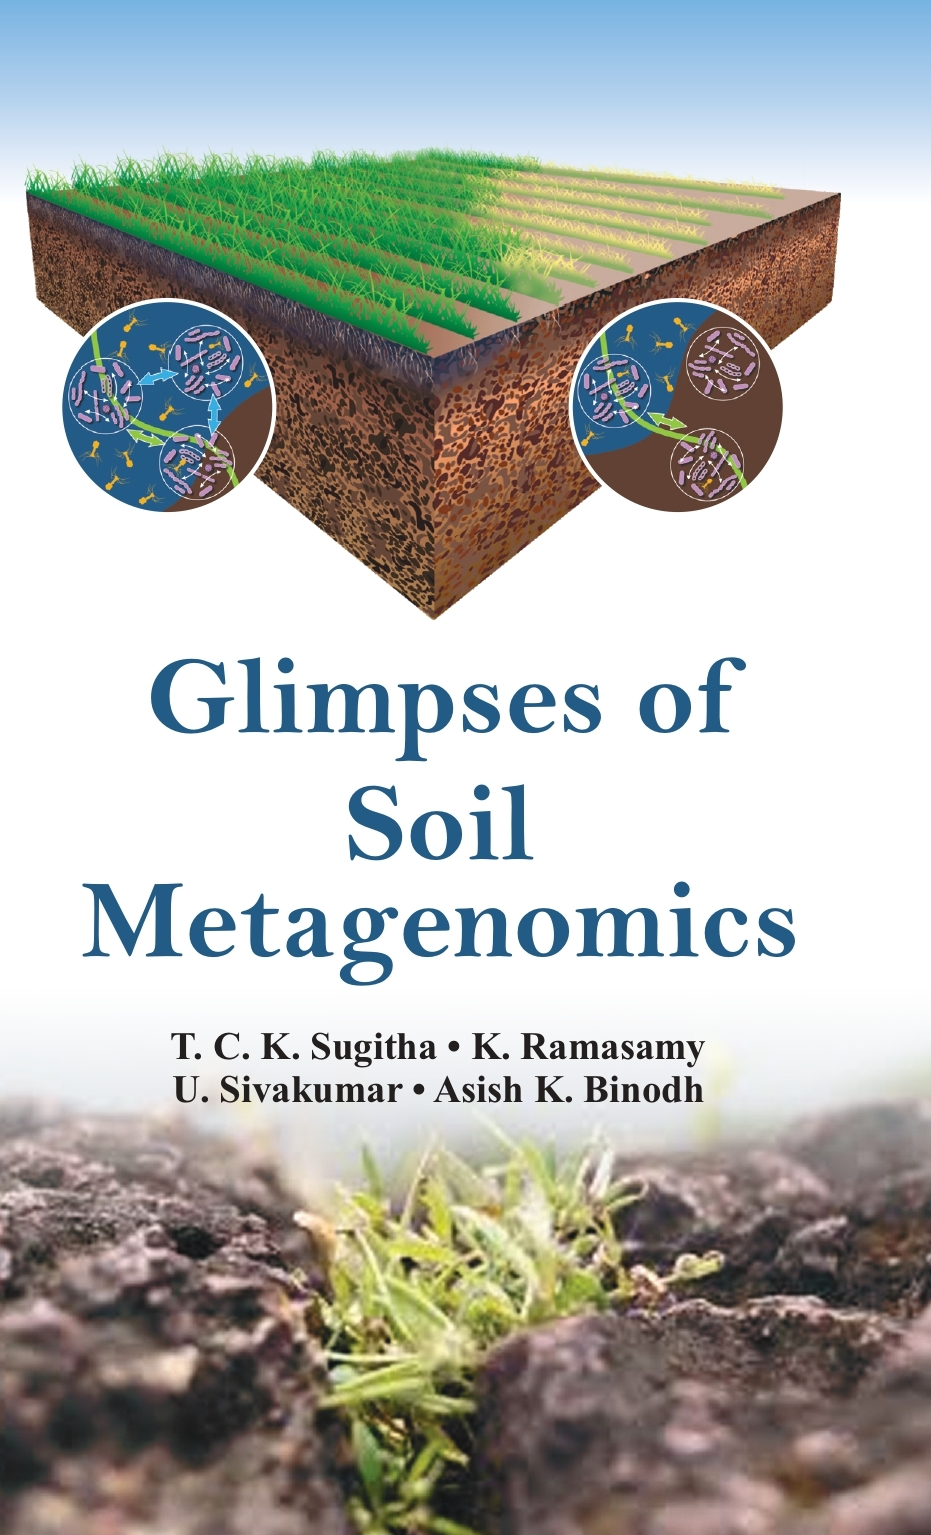 Glimpses of Soil Metagenomics